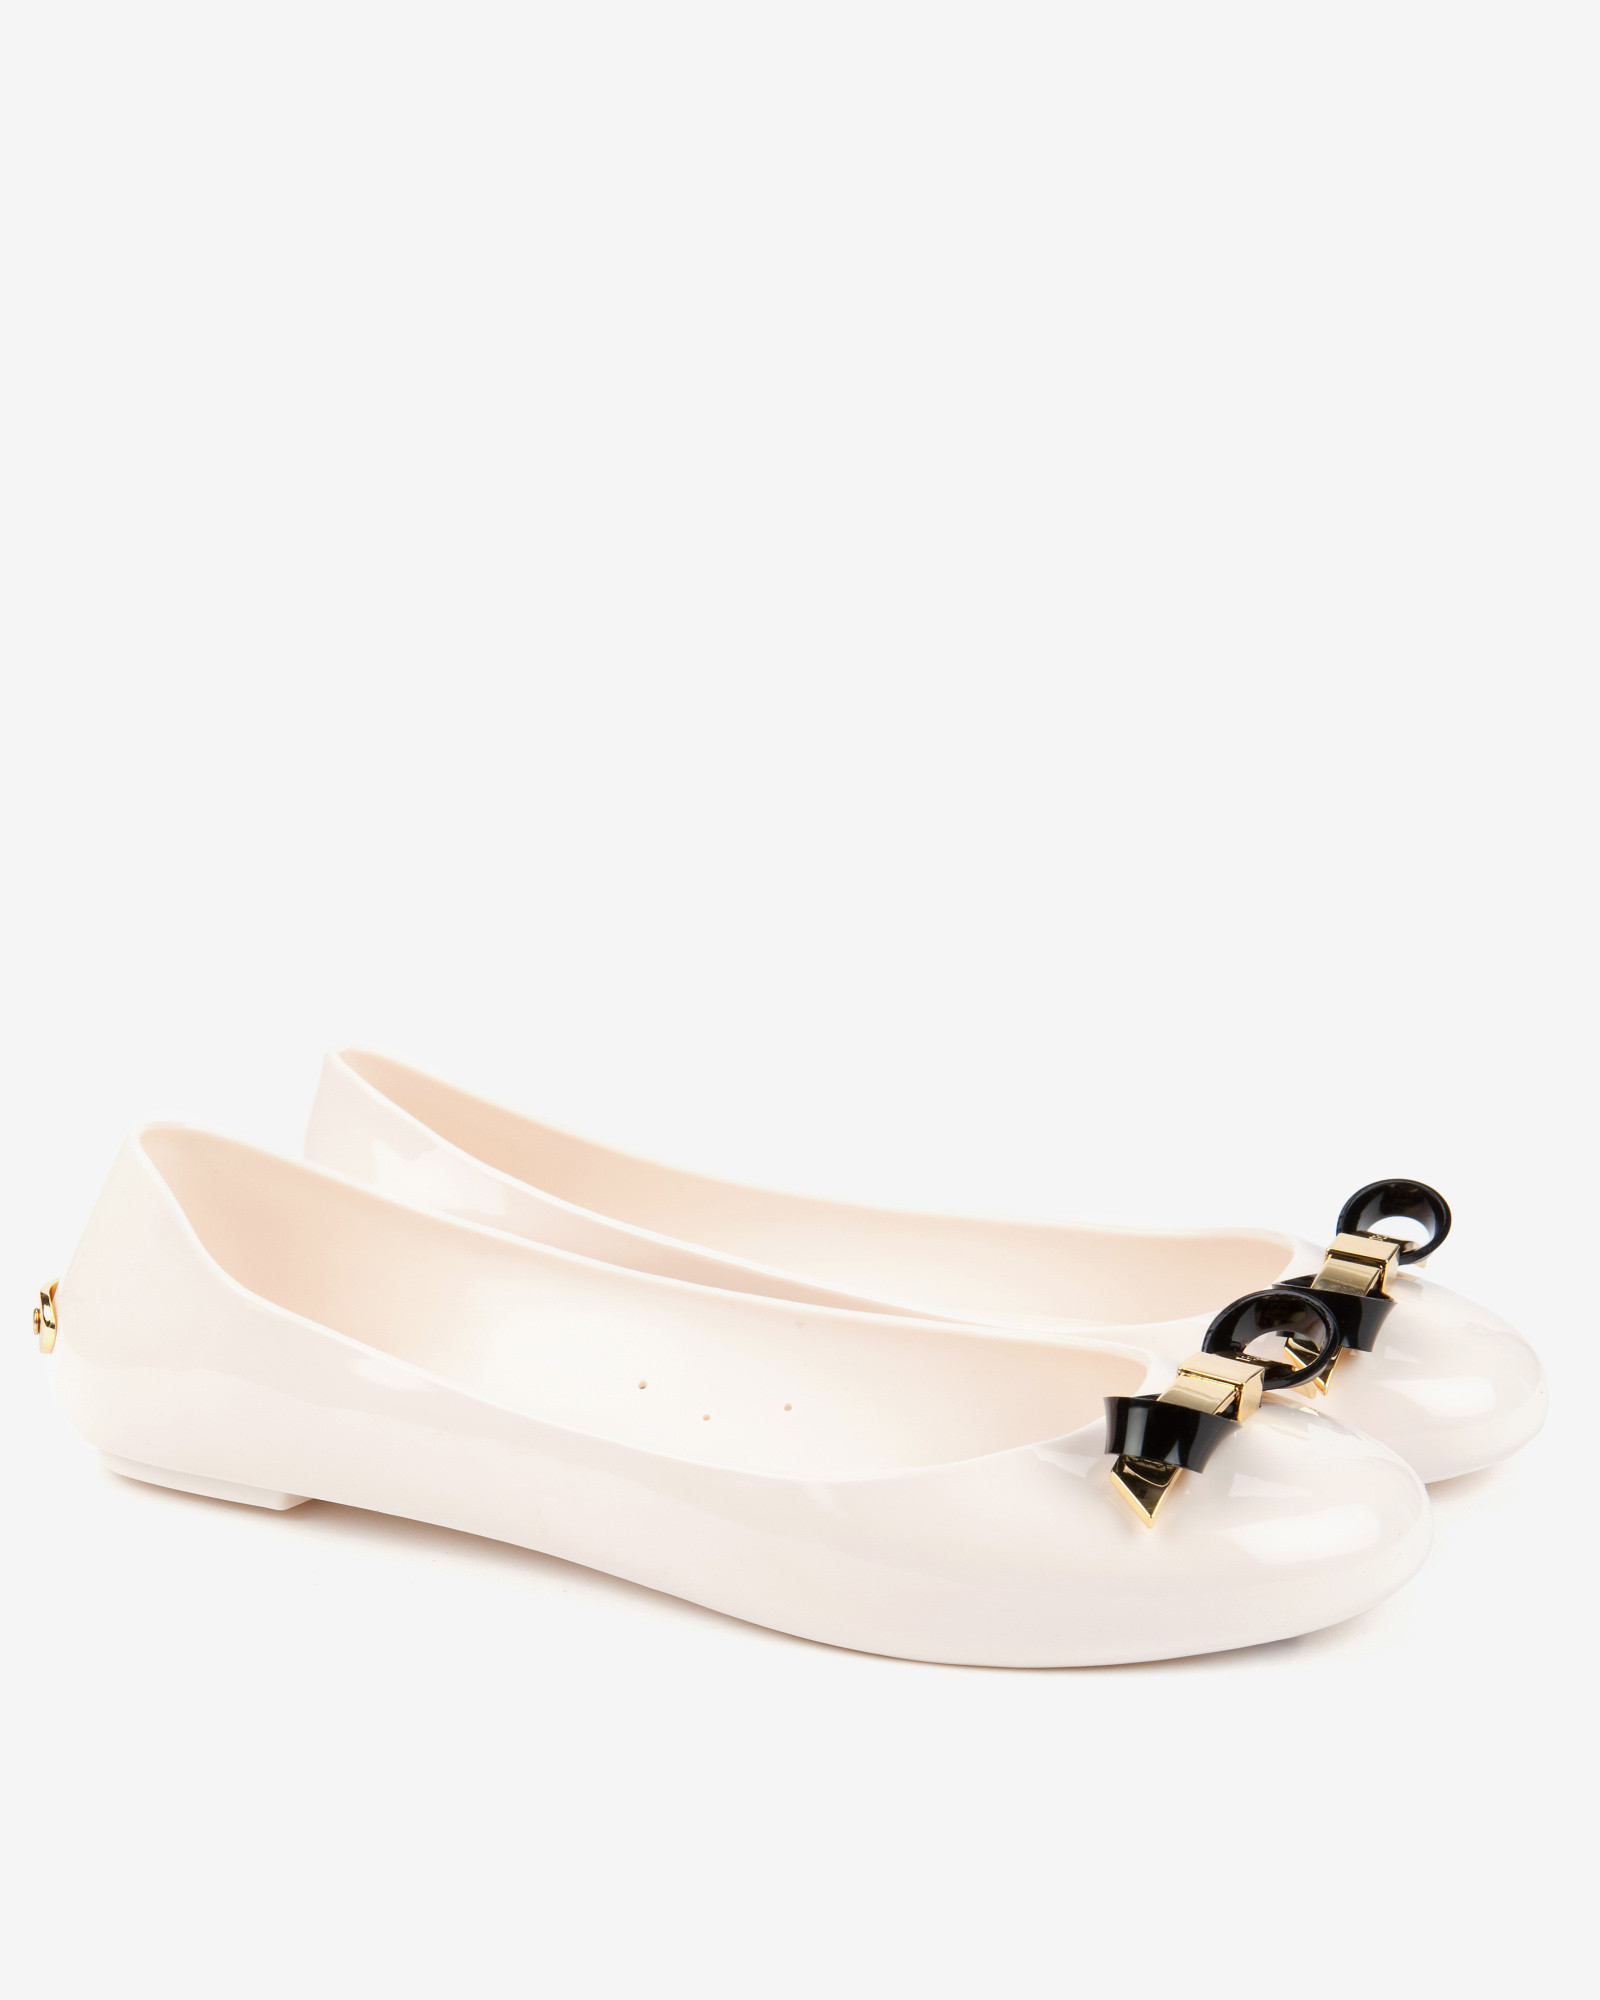 f75595b4d41f7d Ted Baker Slim Bow Jelly Pumps in Natural - Lyst